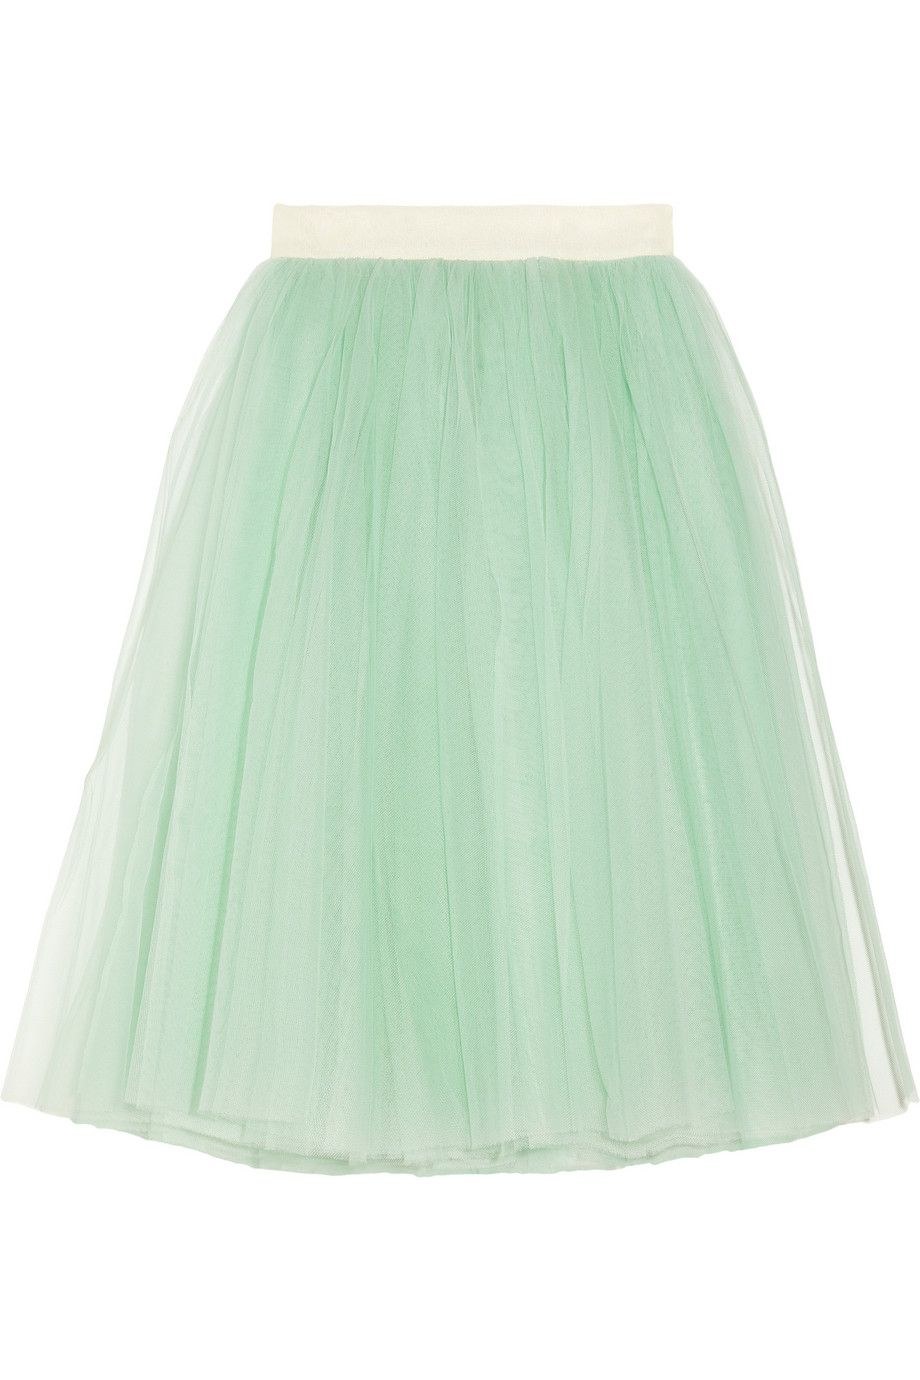 Of course it's already sold out, but this D&G tulle midi skirt is to. die. for. I'm so sad I missed it!!